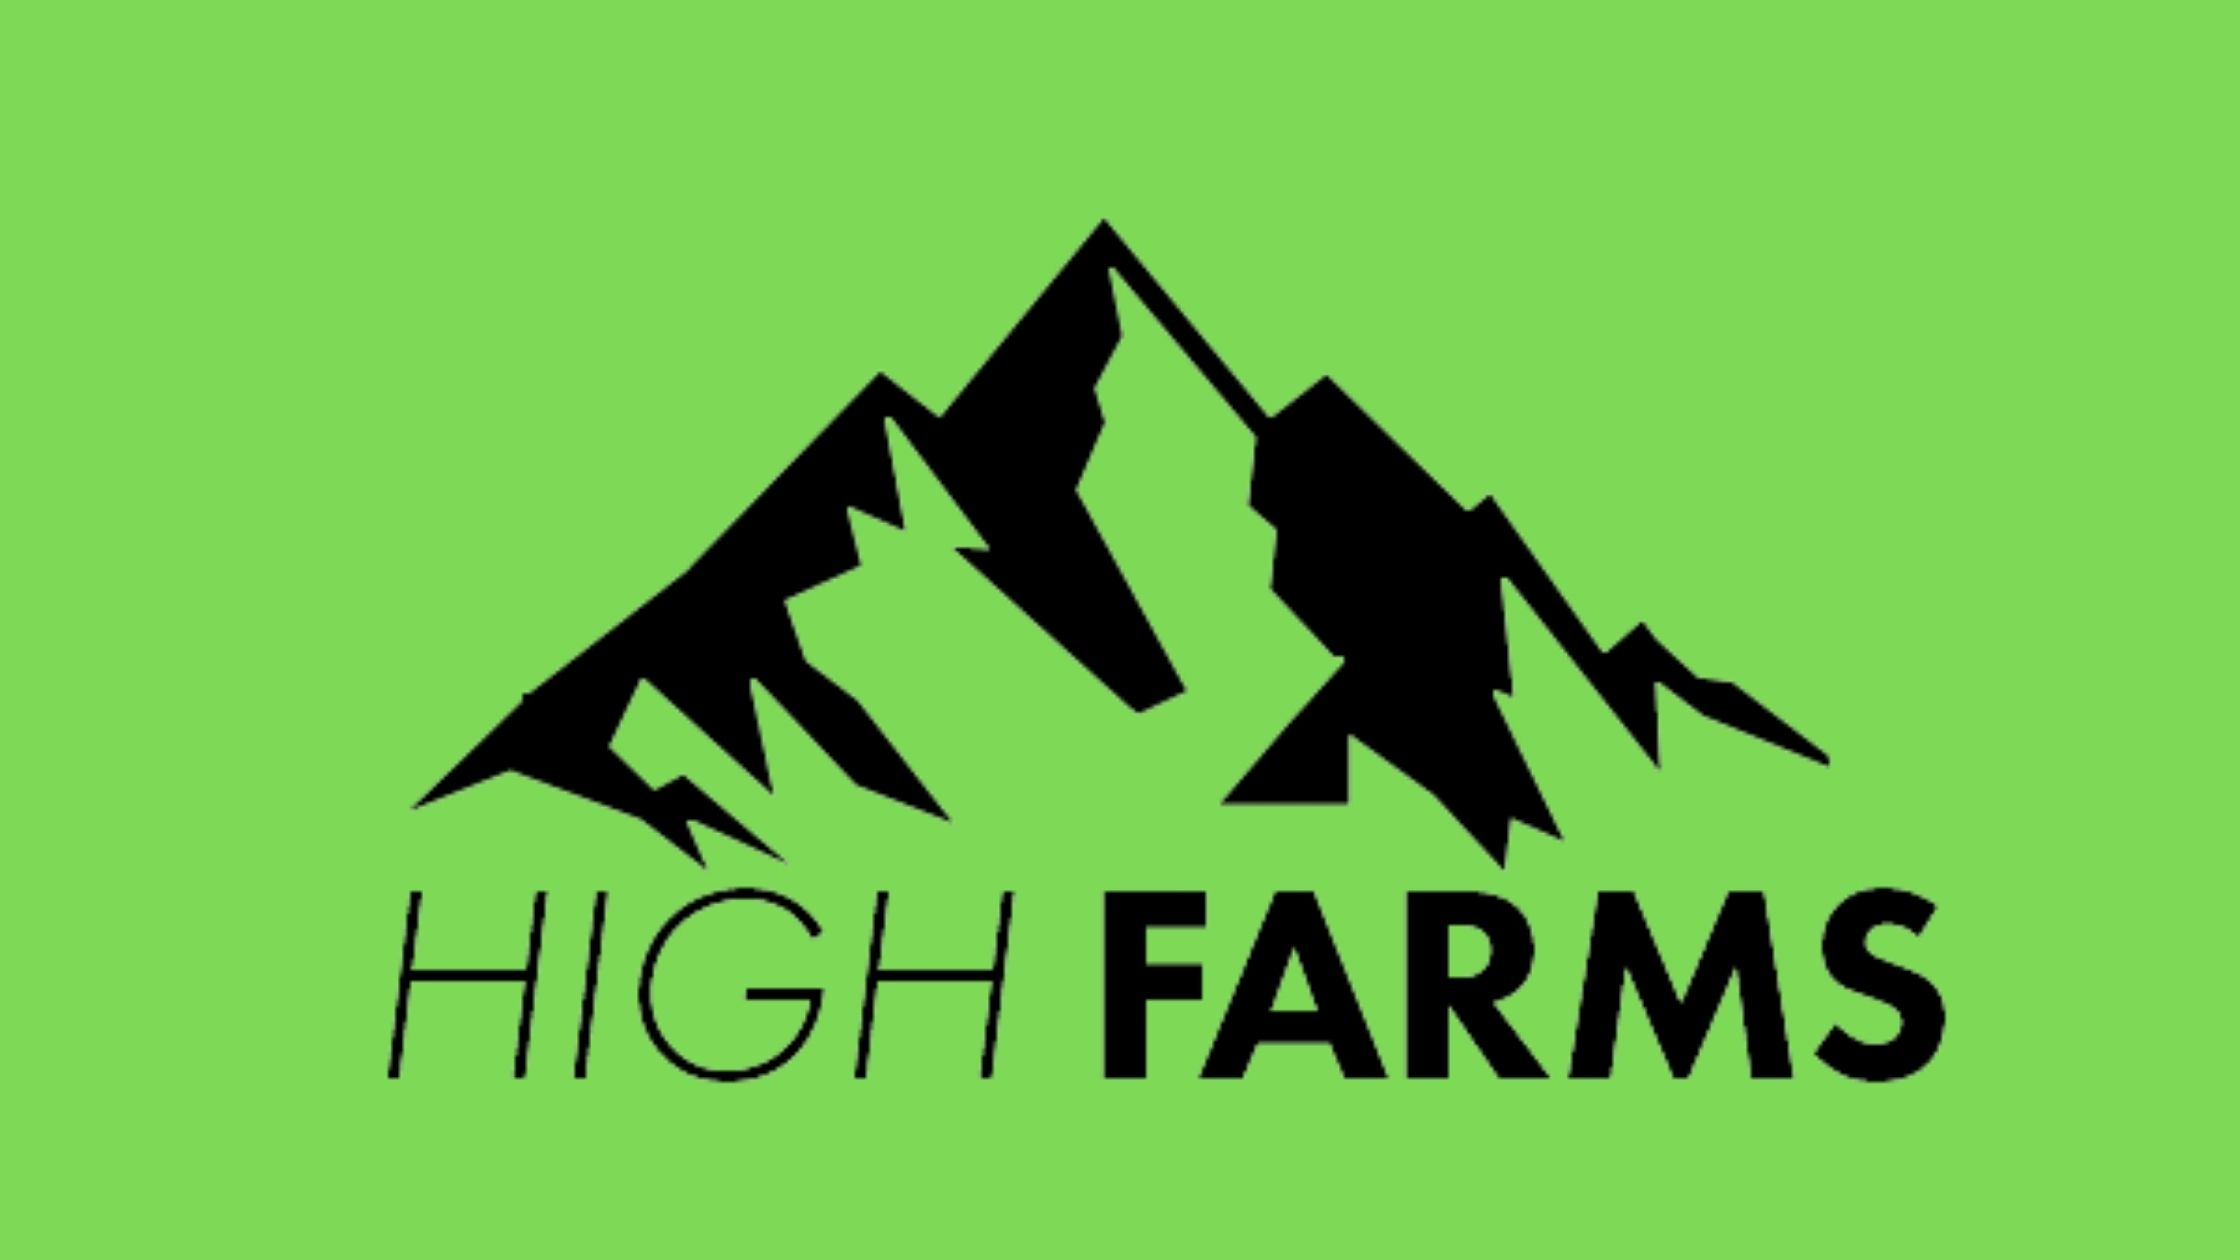 instabulletin.com - David Conway - High farms is Partnering with Cannabis Companies Struggling to Survive in the Legal Cannabis Market